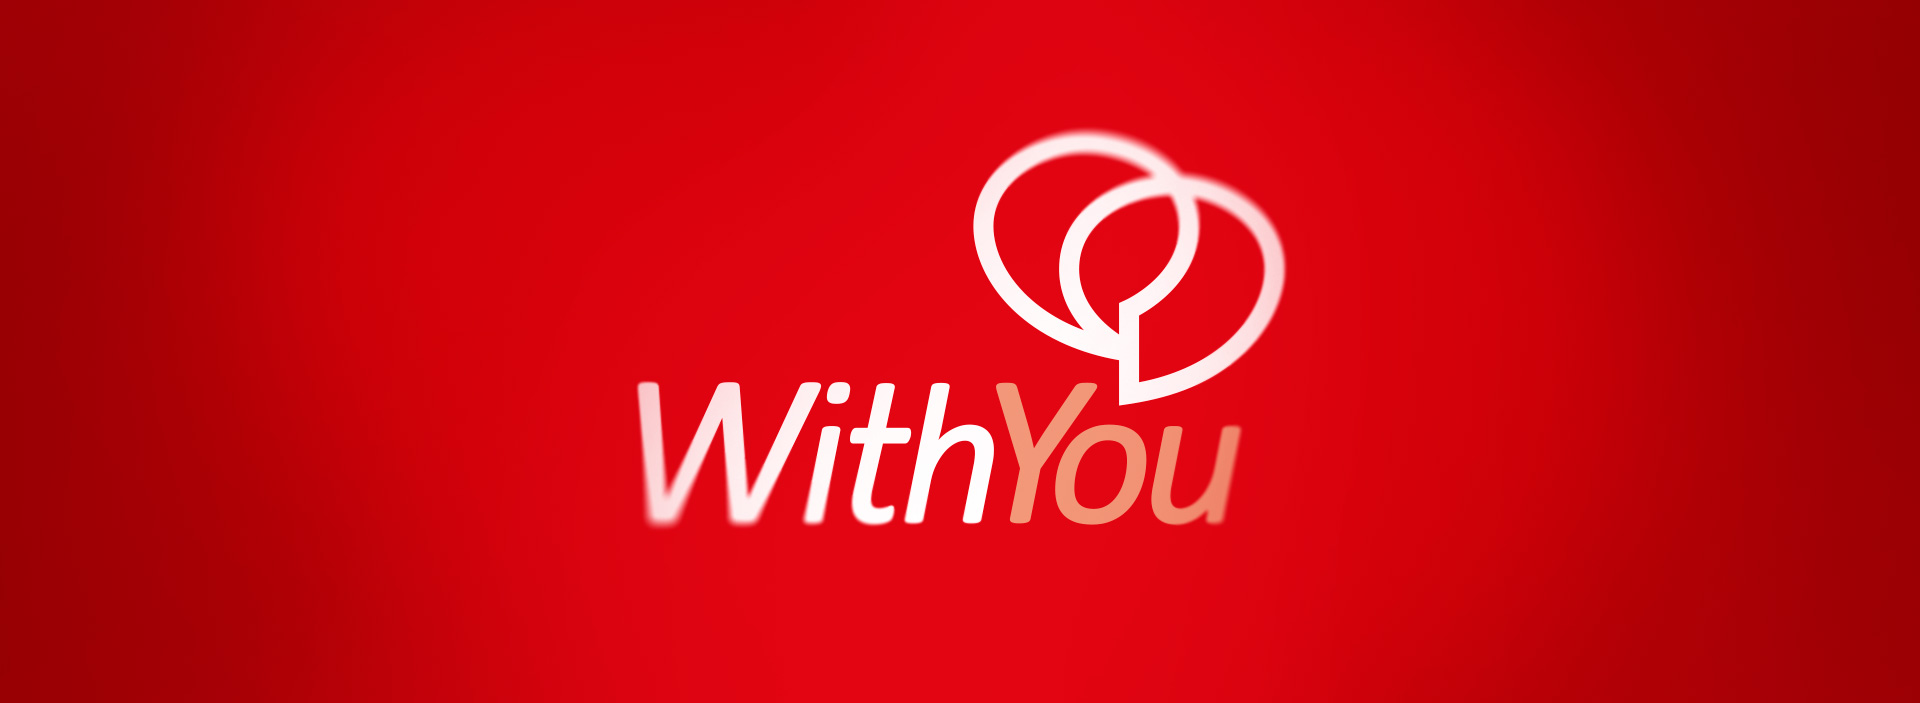 With You brand